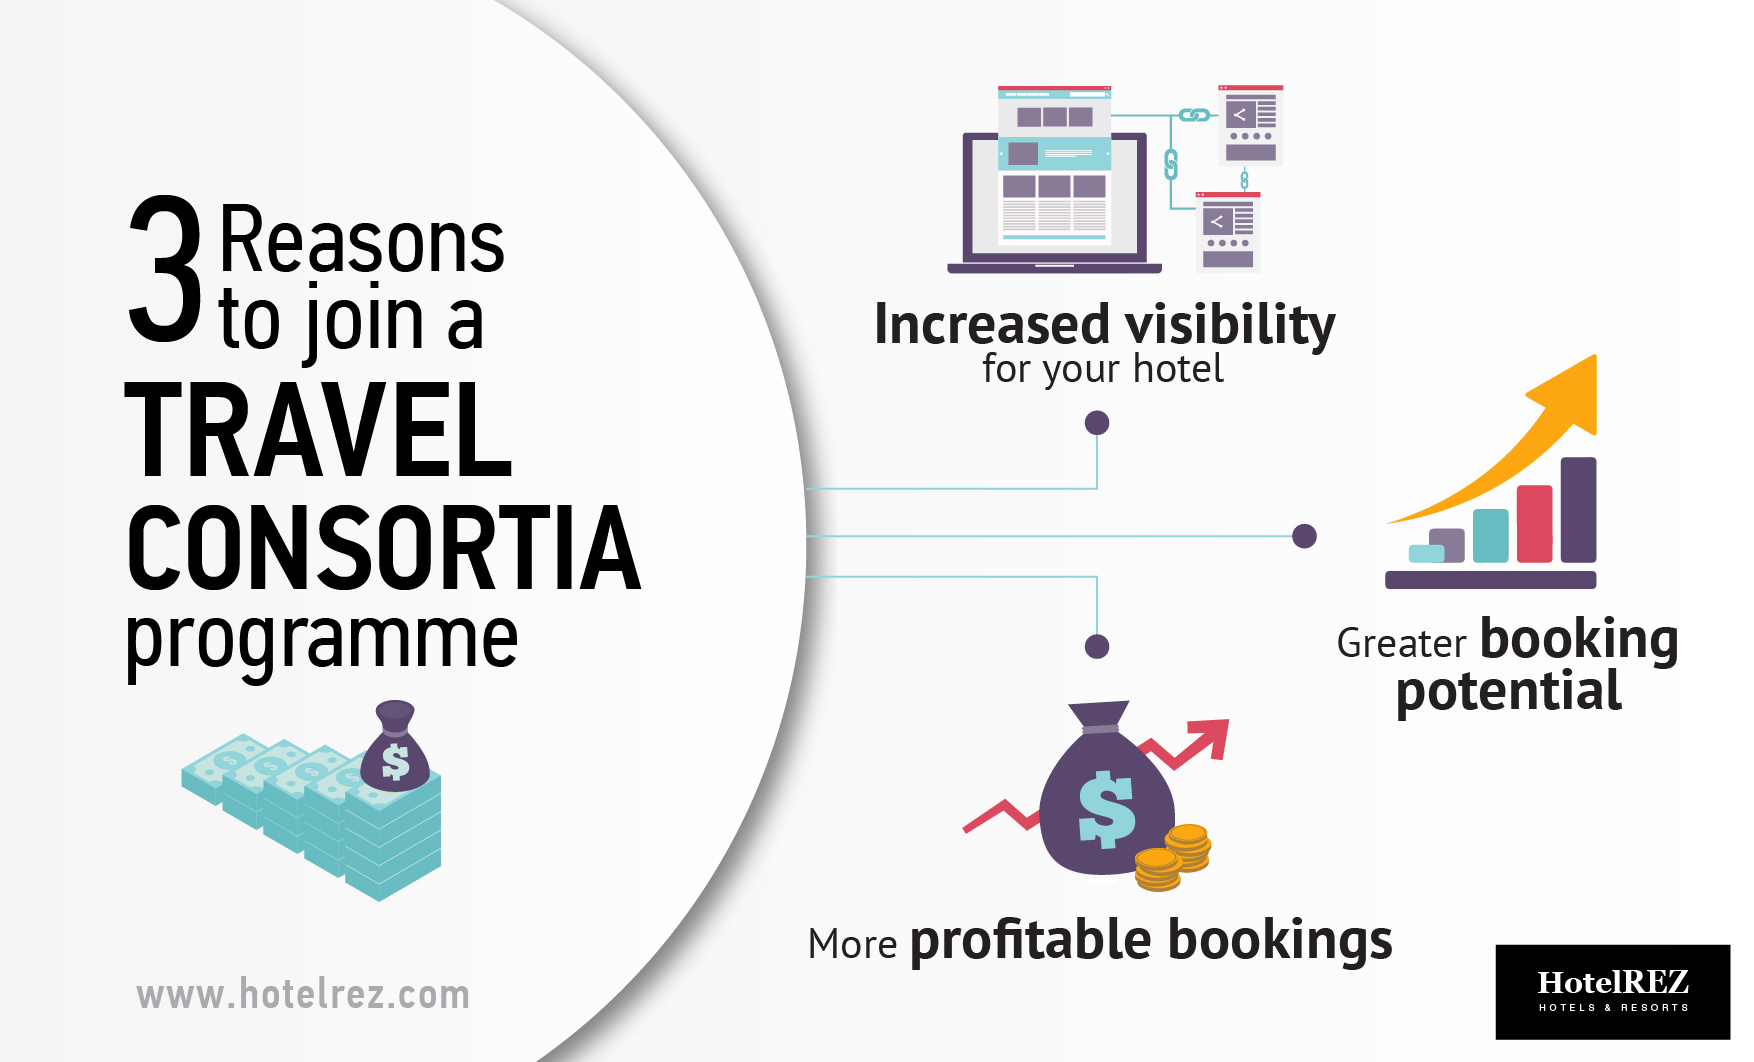 join a travel consortia programme